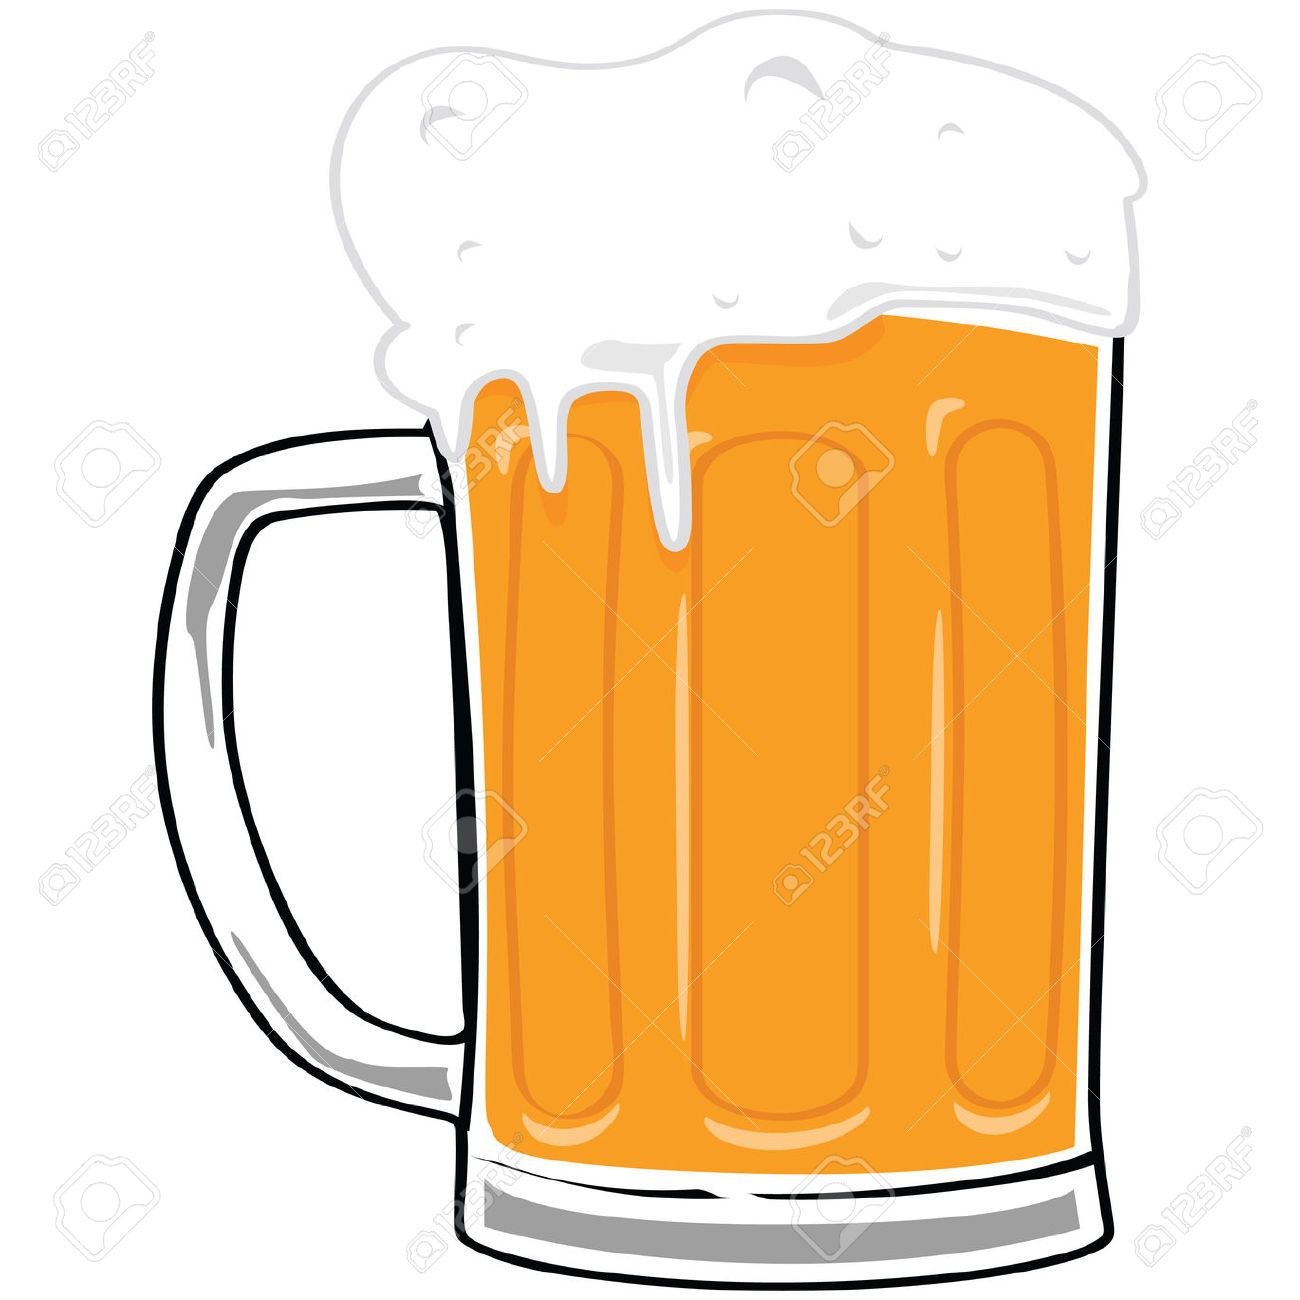 Beer Mug Stock Photos Pictures Royalty Free Beer Mug Images And Stock Photography Beer Mug Mugs Free Beer